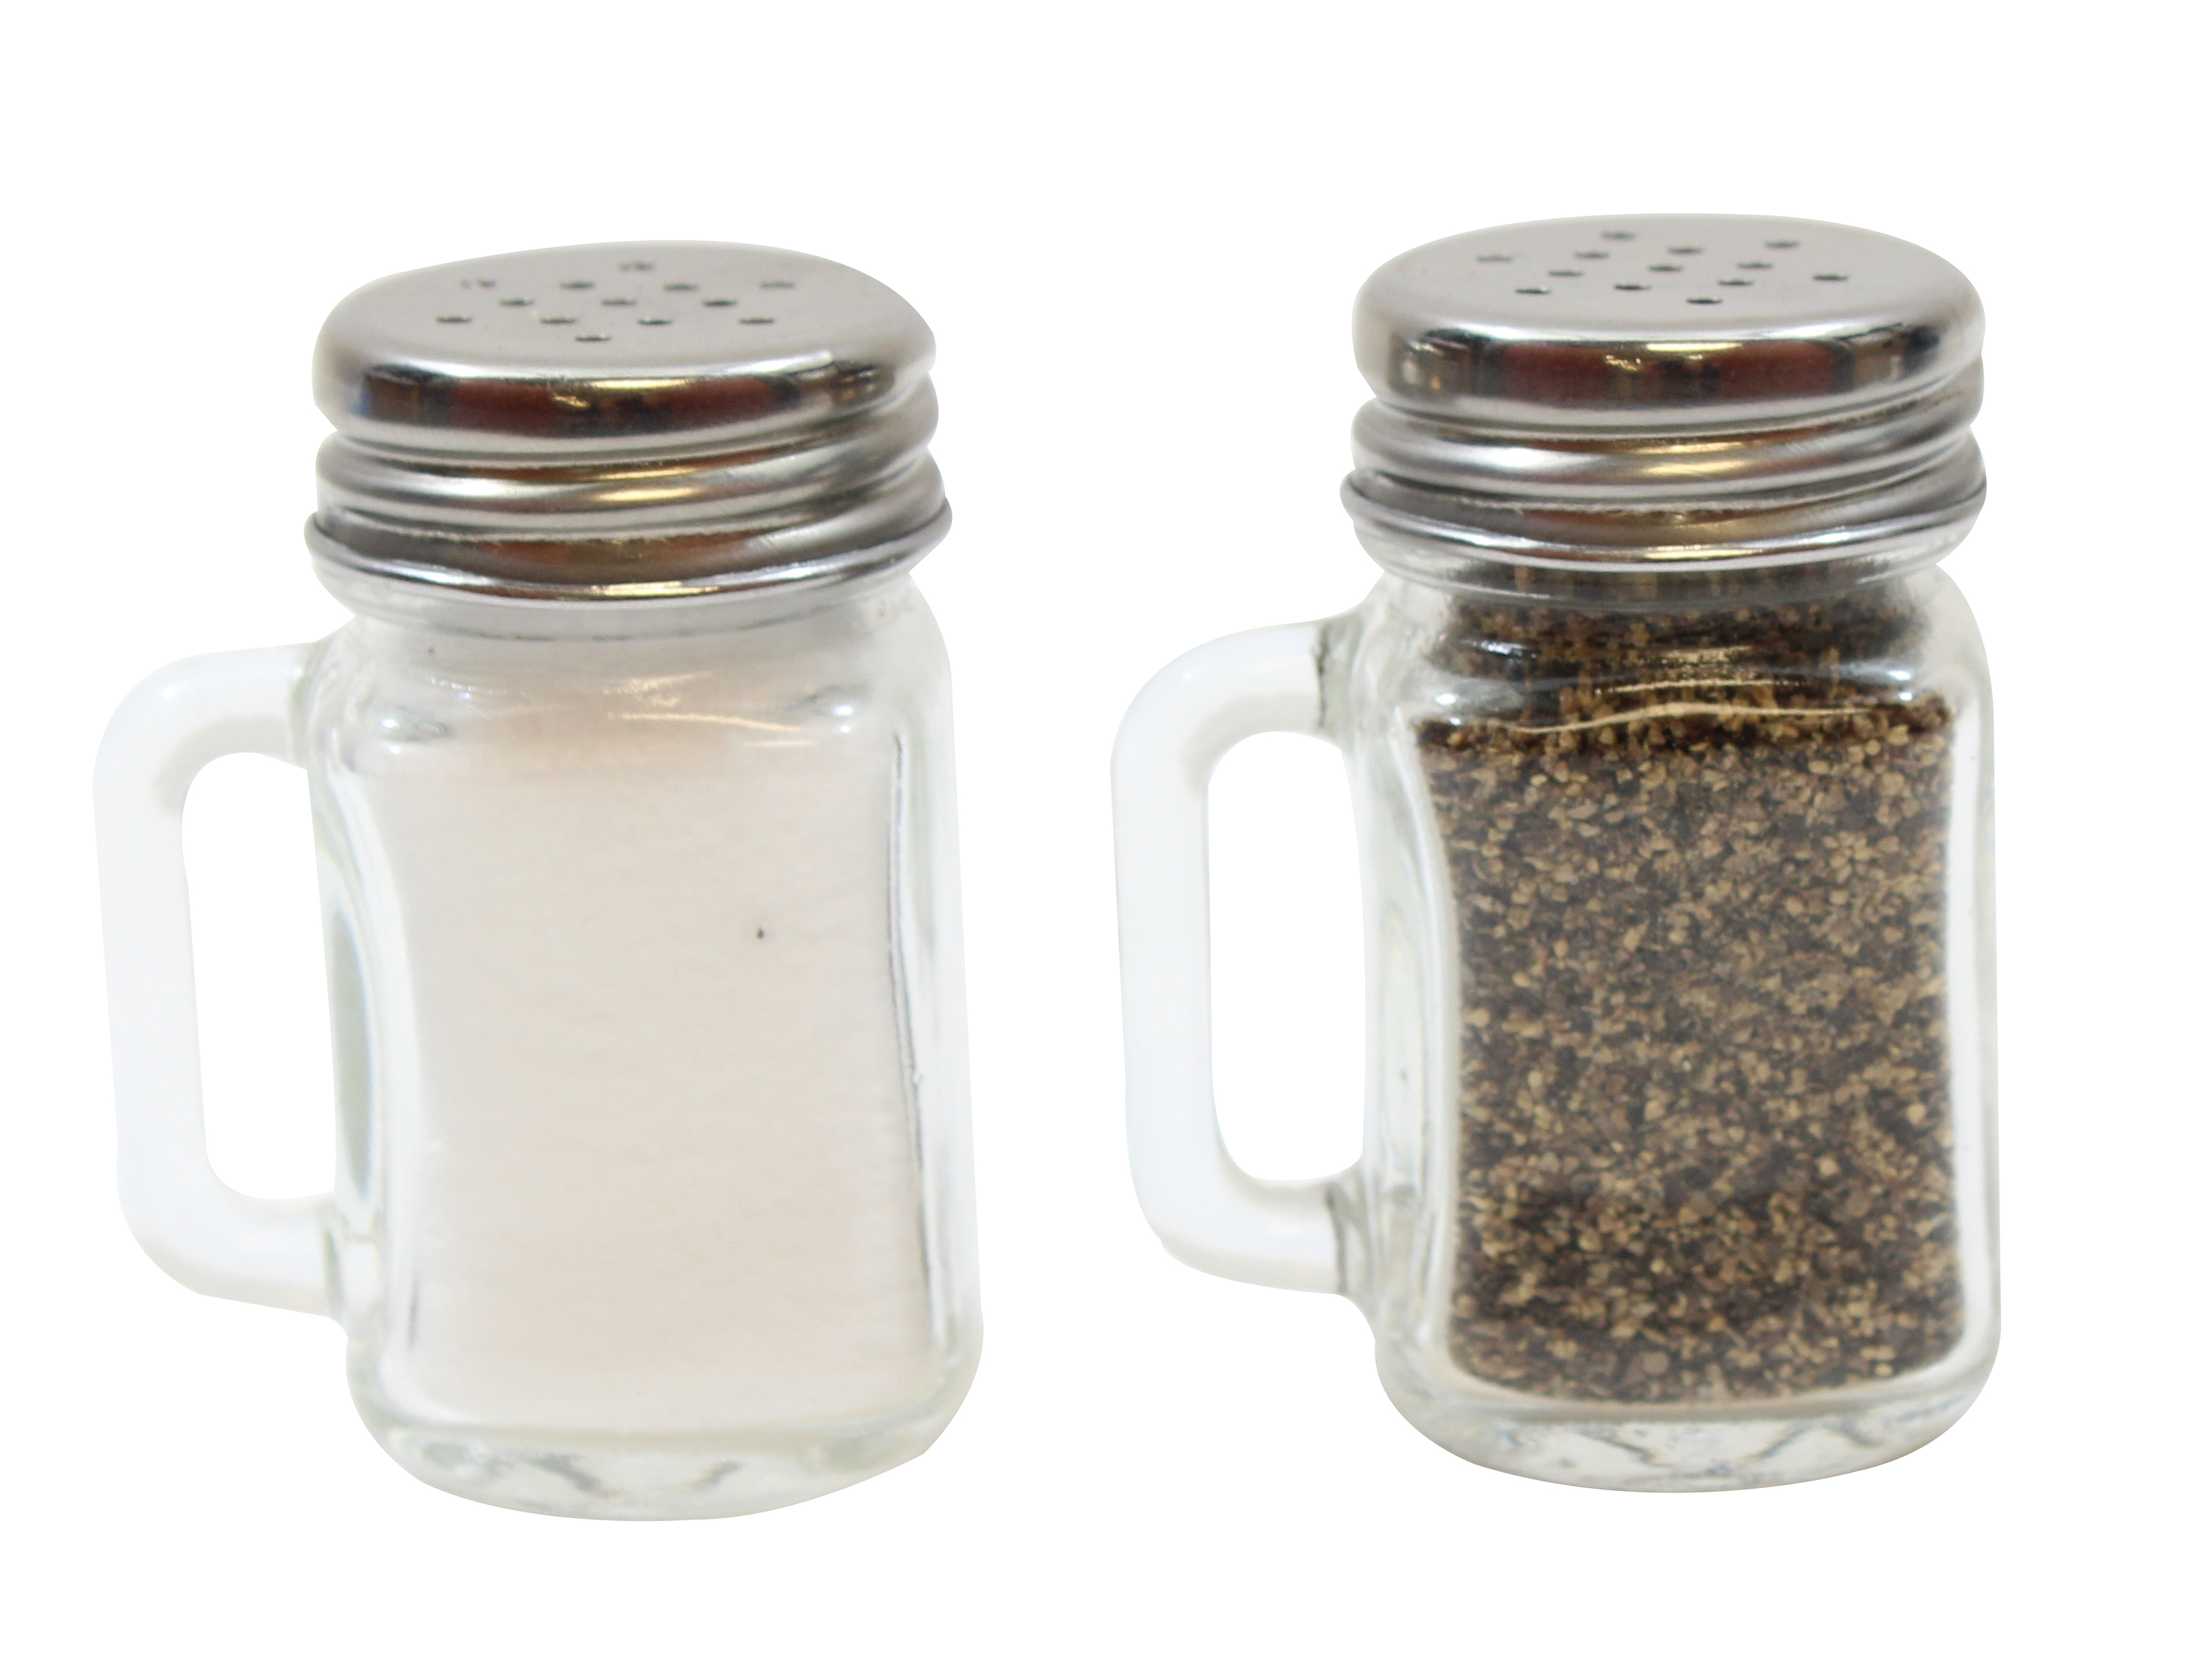 TableCraft Products C170-12 salt / pepper shaker